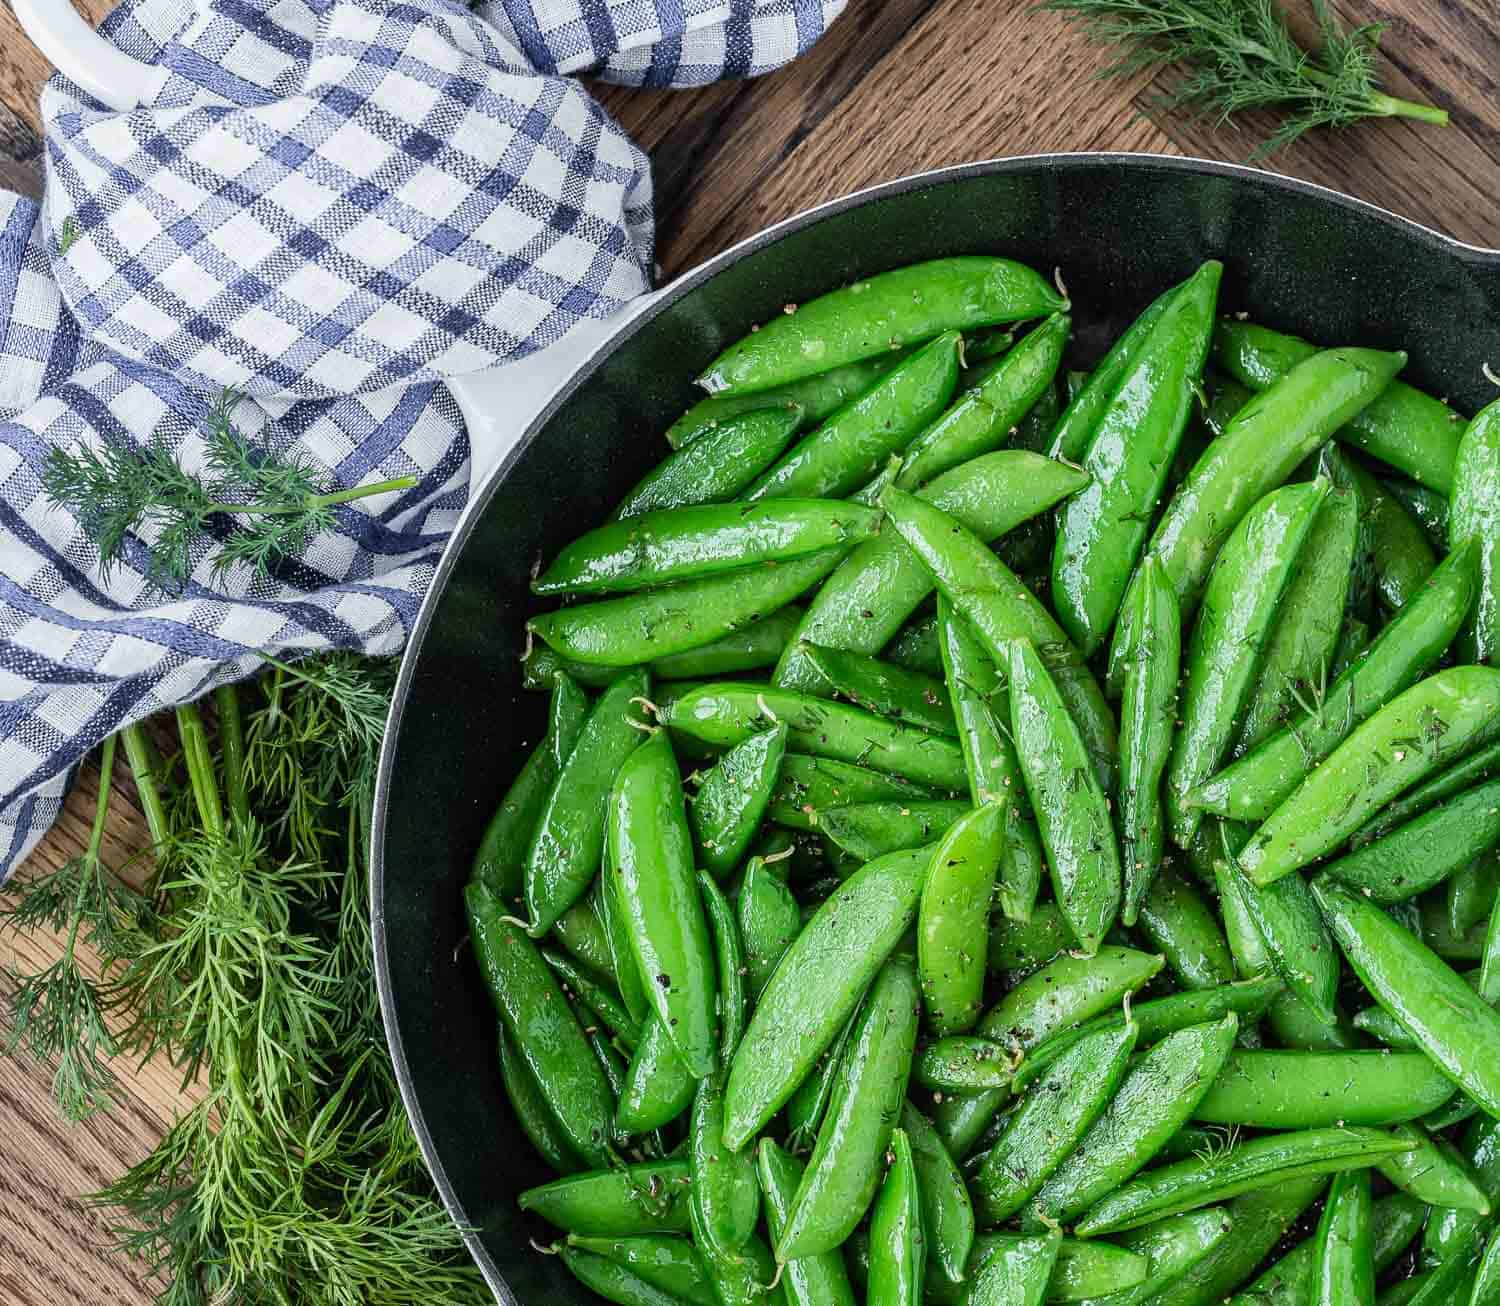 Cooked snap peas with dill in a pan on a wooden surface with a blue and white linen.